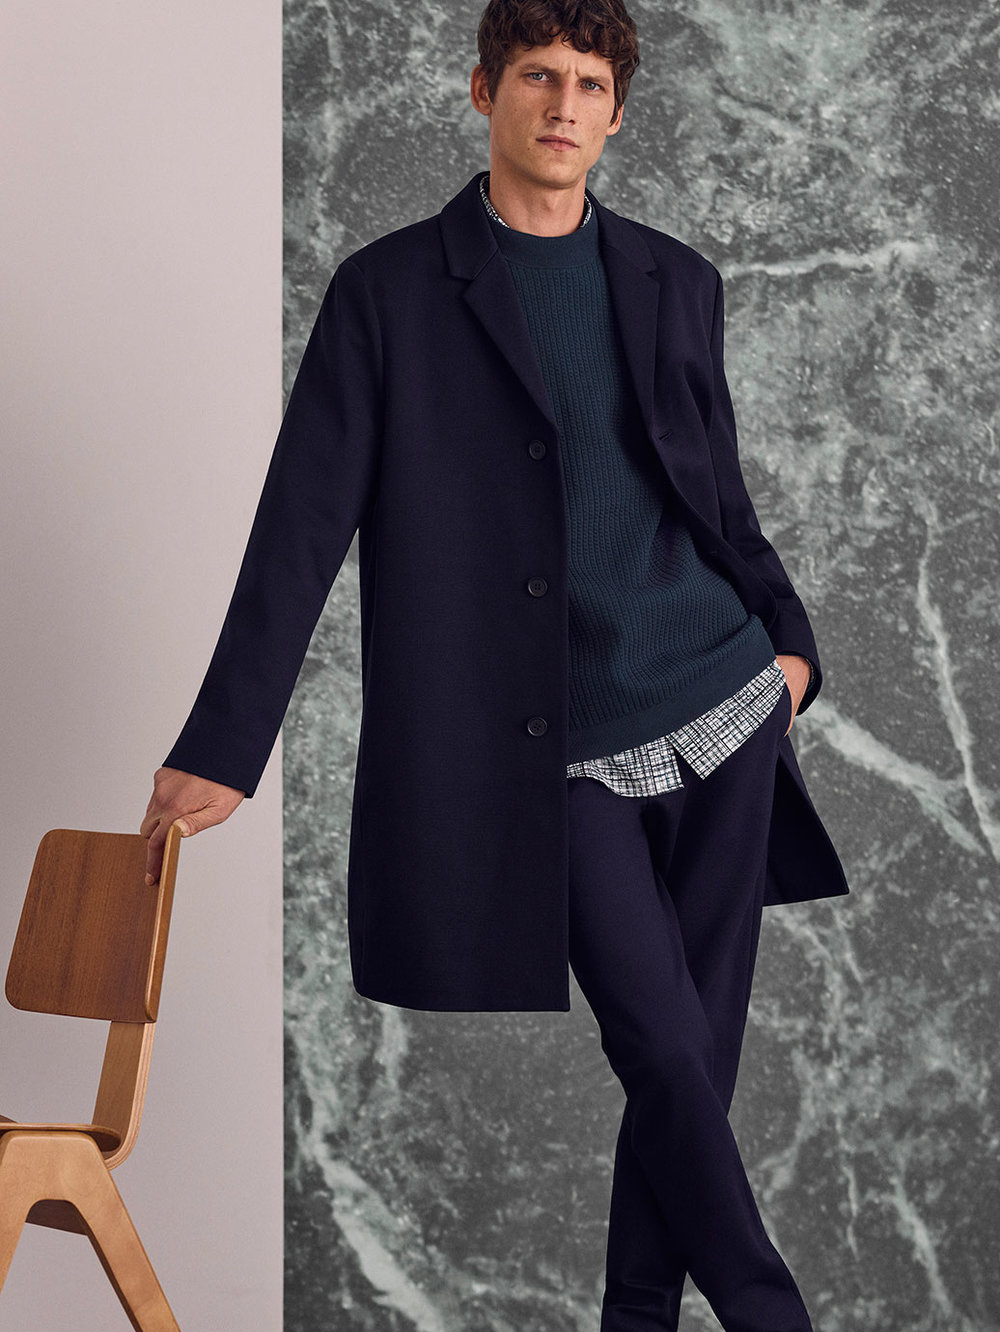 Jersey coat, £115 Raised square knit jumper, £59 Printed cotton shirt, £59 Zip-cuff jersey trousers, £69